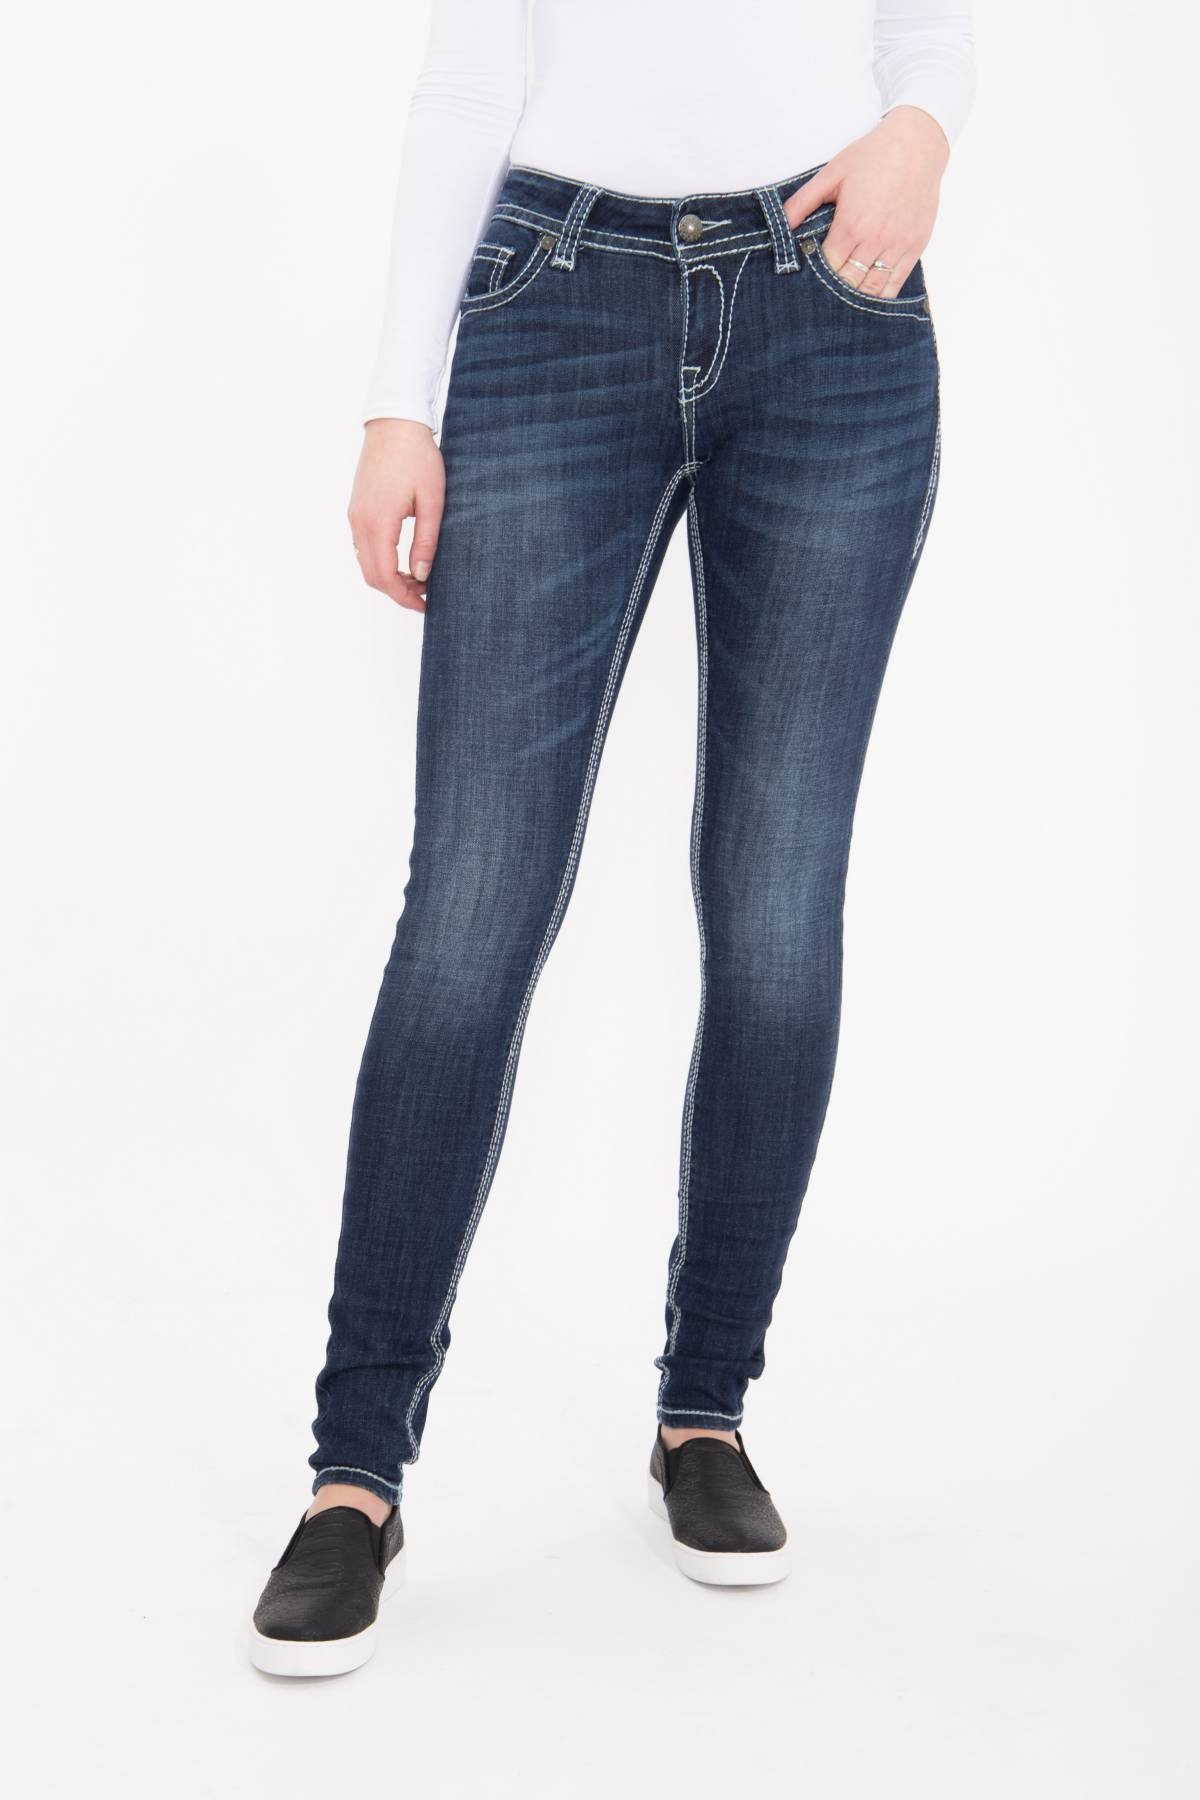 Blue Monkey Skinny-fit-Jeans Luna 3855 | 04251484627313